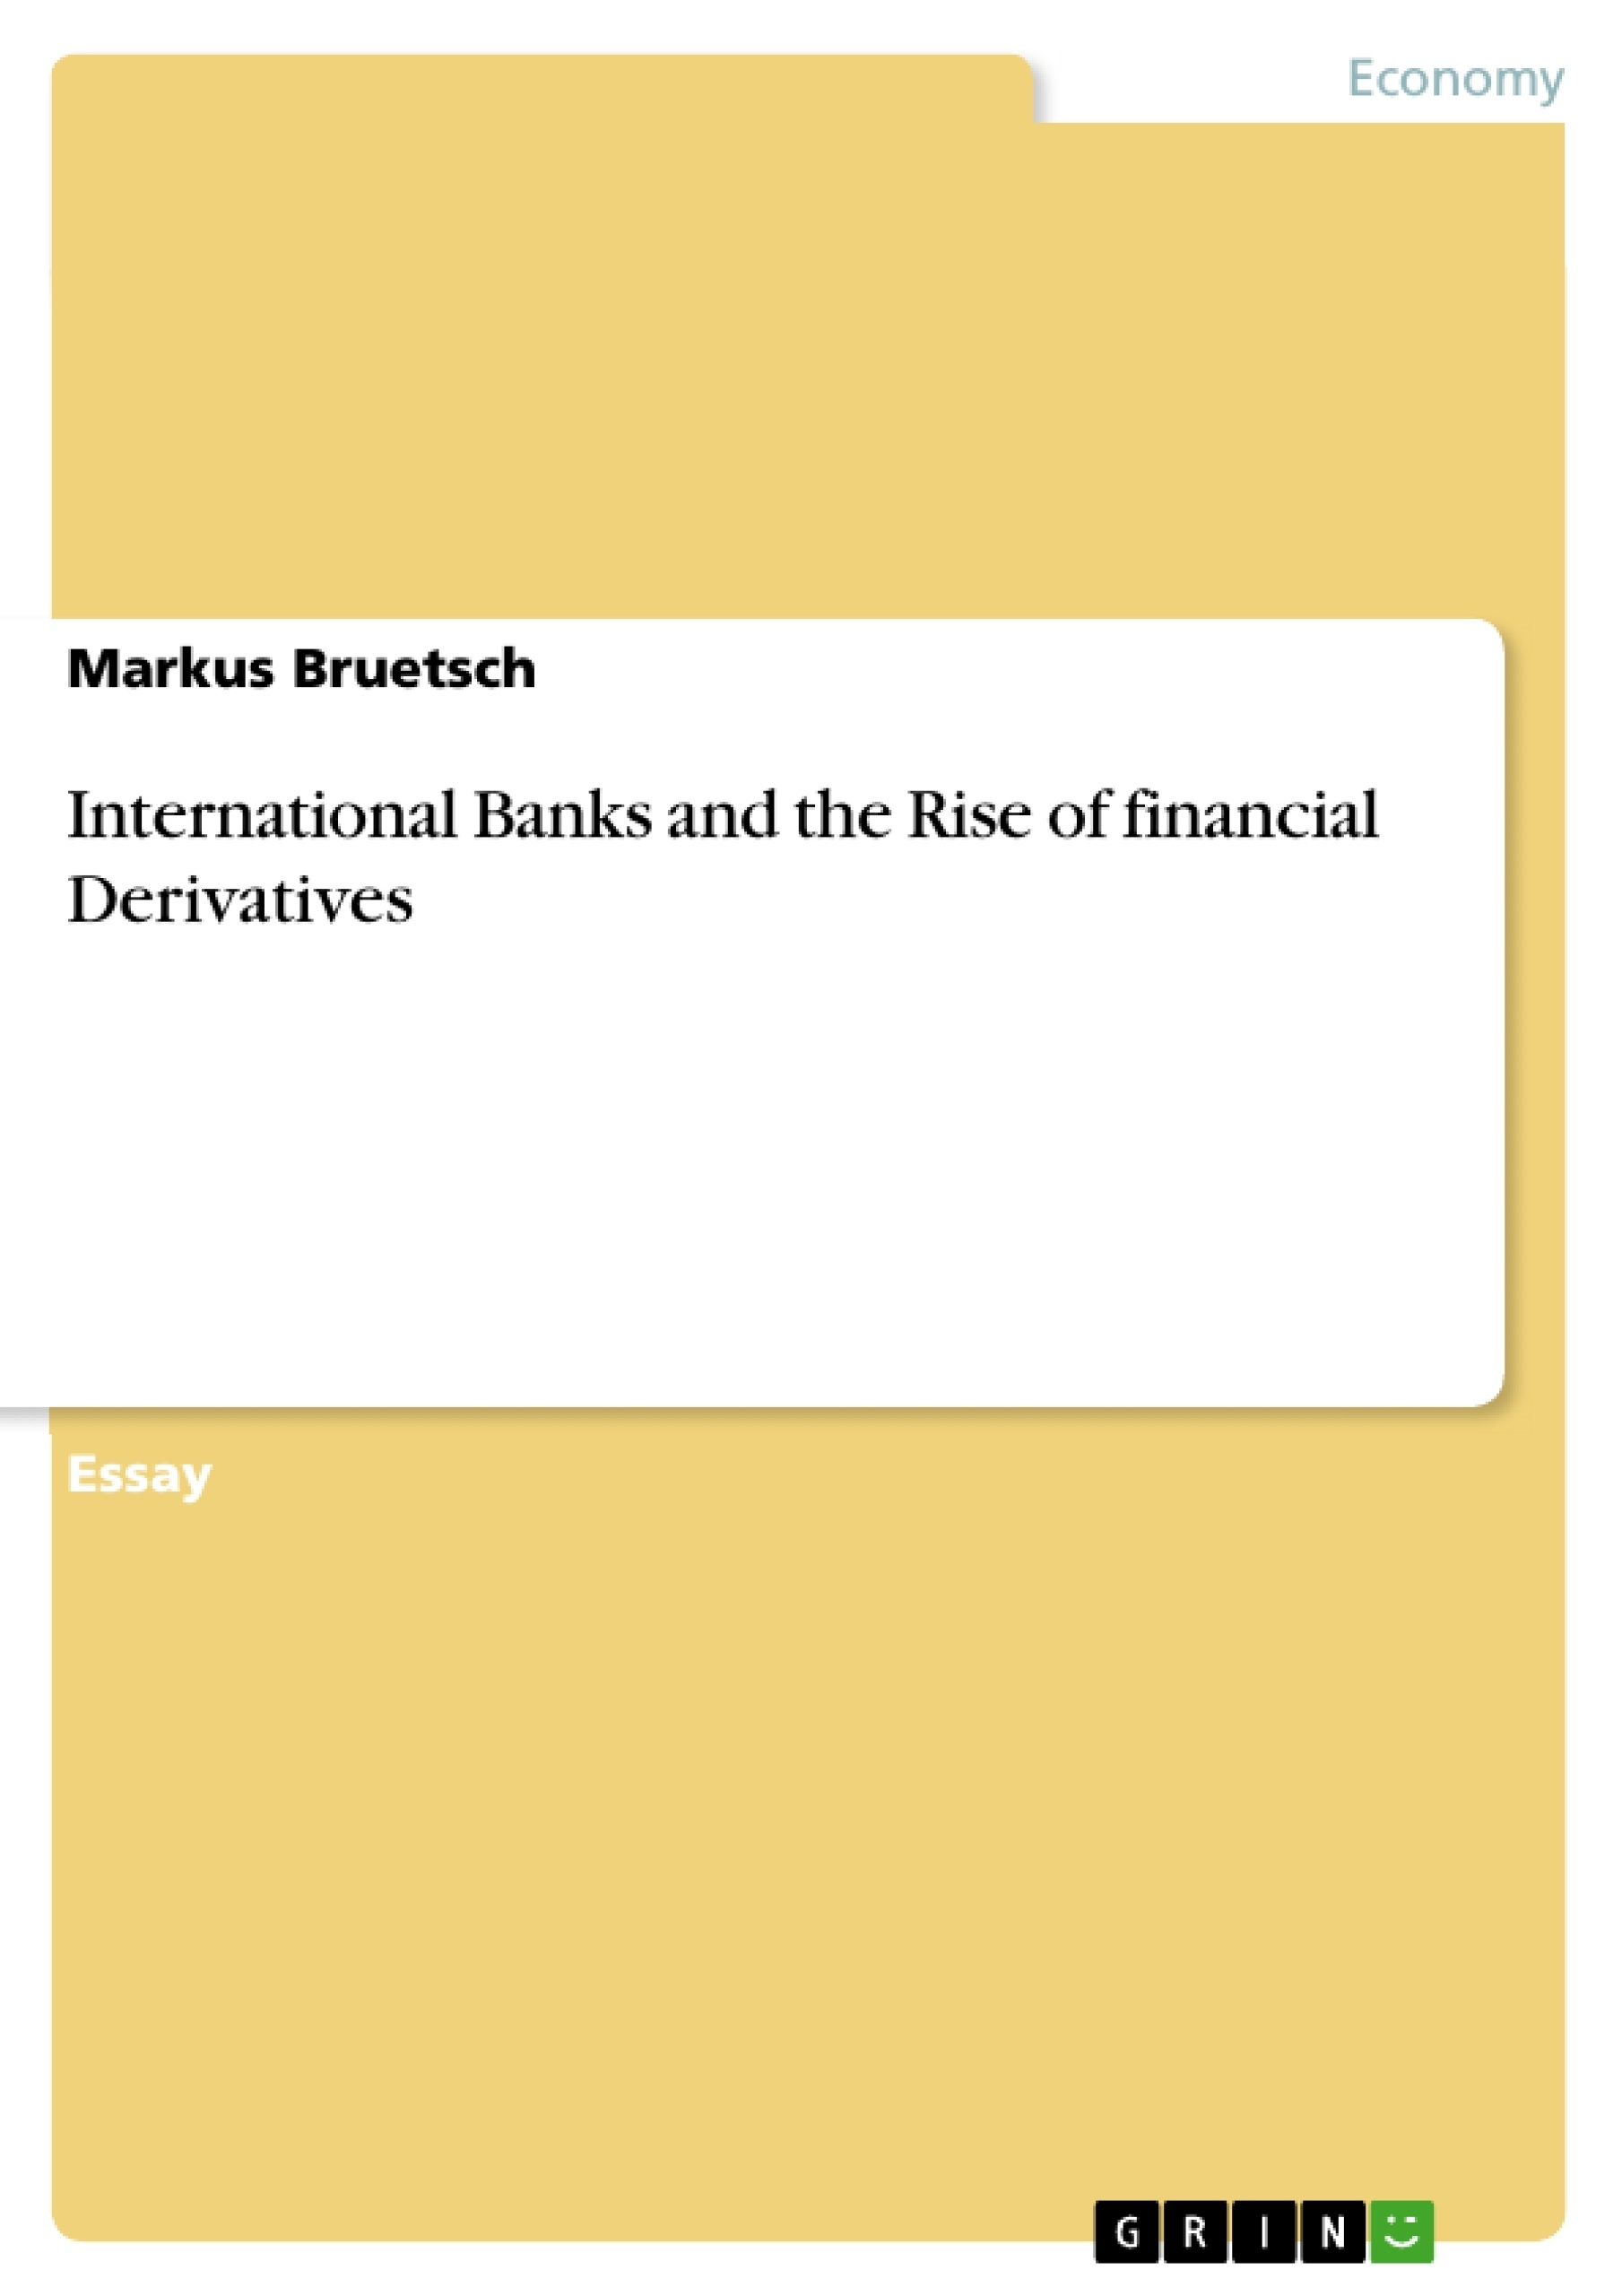 Title: International Banks and the Rise of financial Derivatives